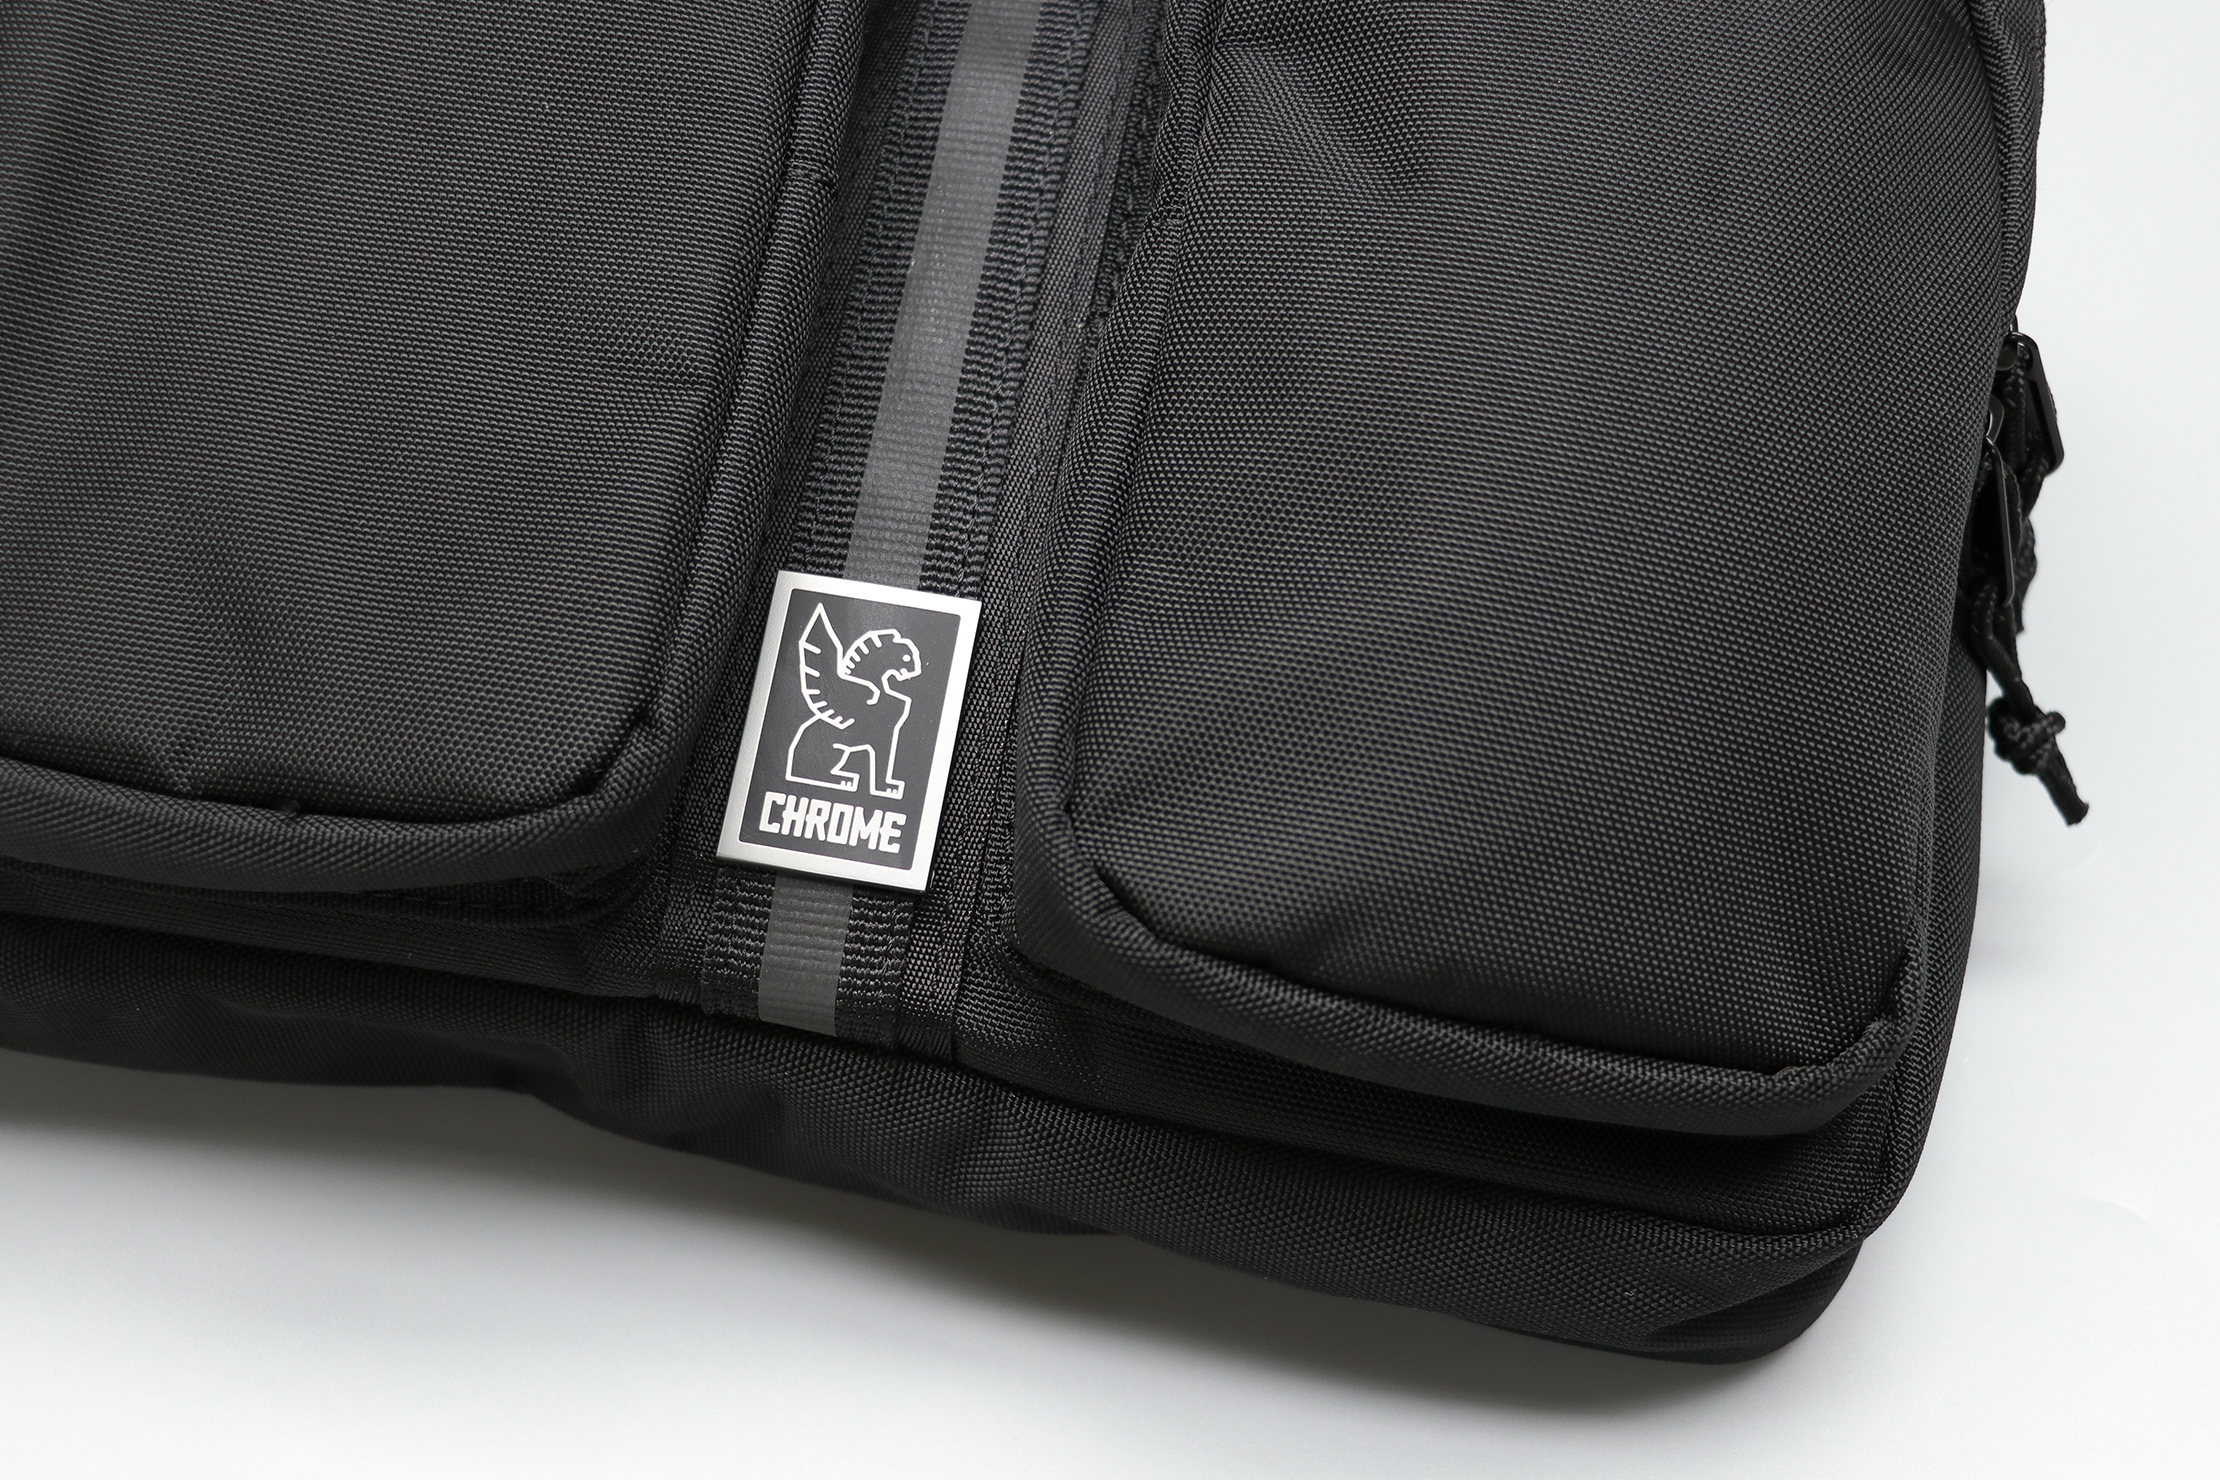 Chrome Industries MXD Link Sling Material and Logo